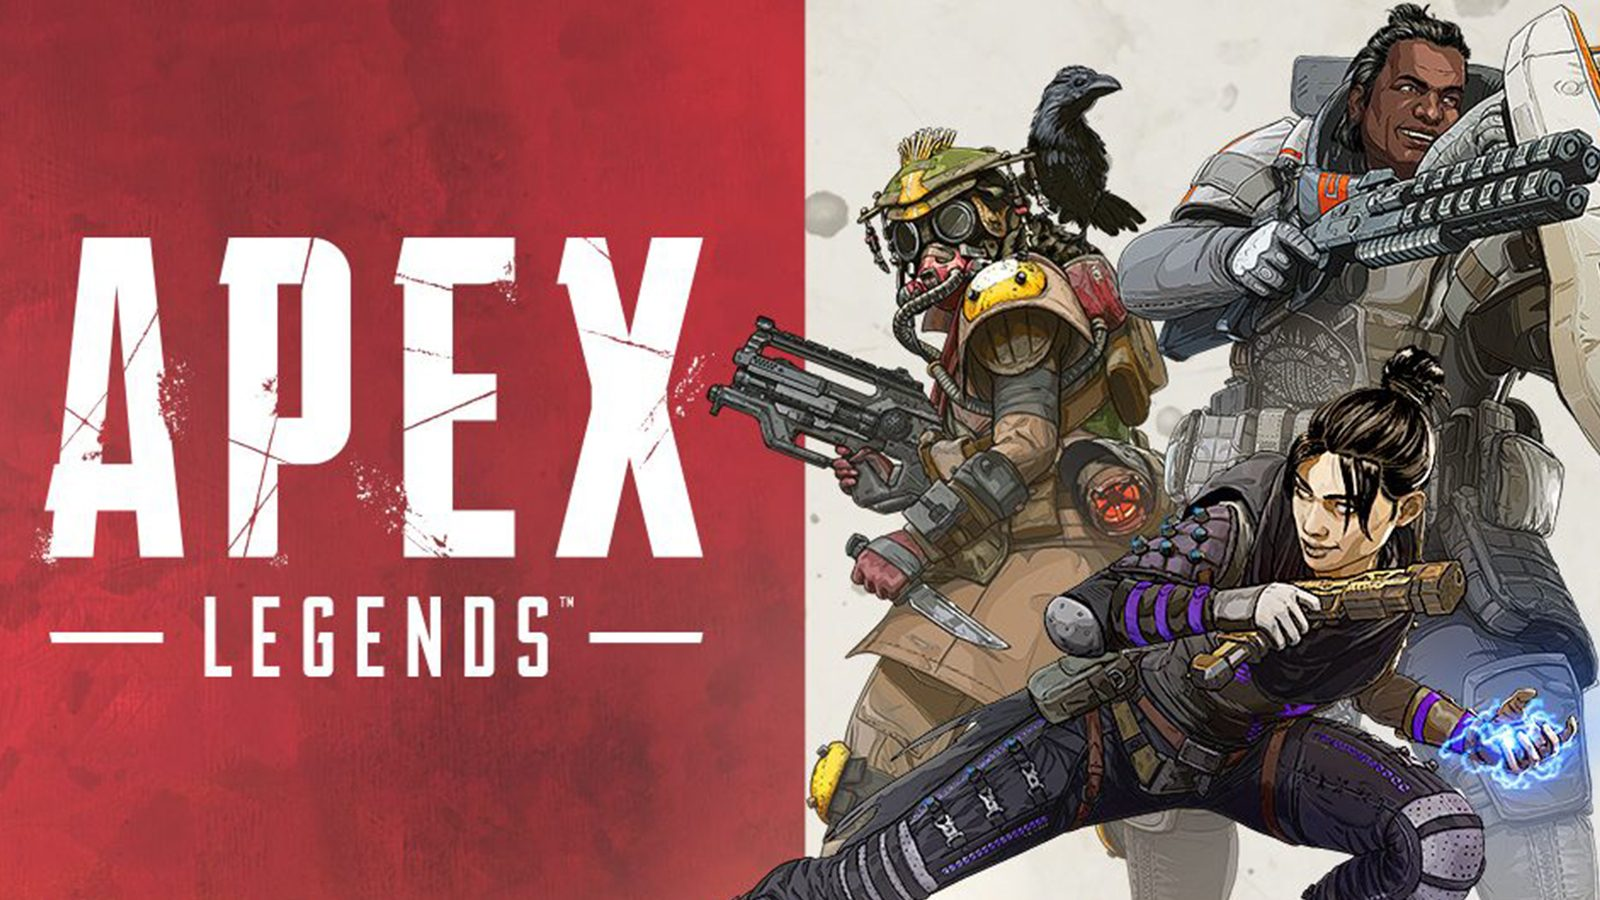 apex legends ot 50 urovnya [origin] + otvet 249 rur